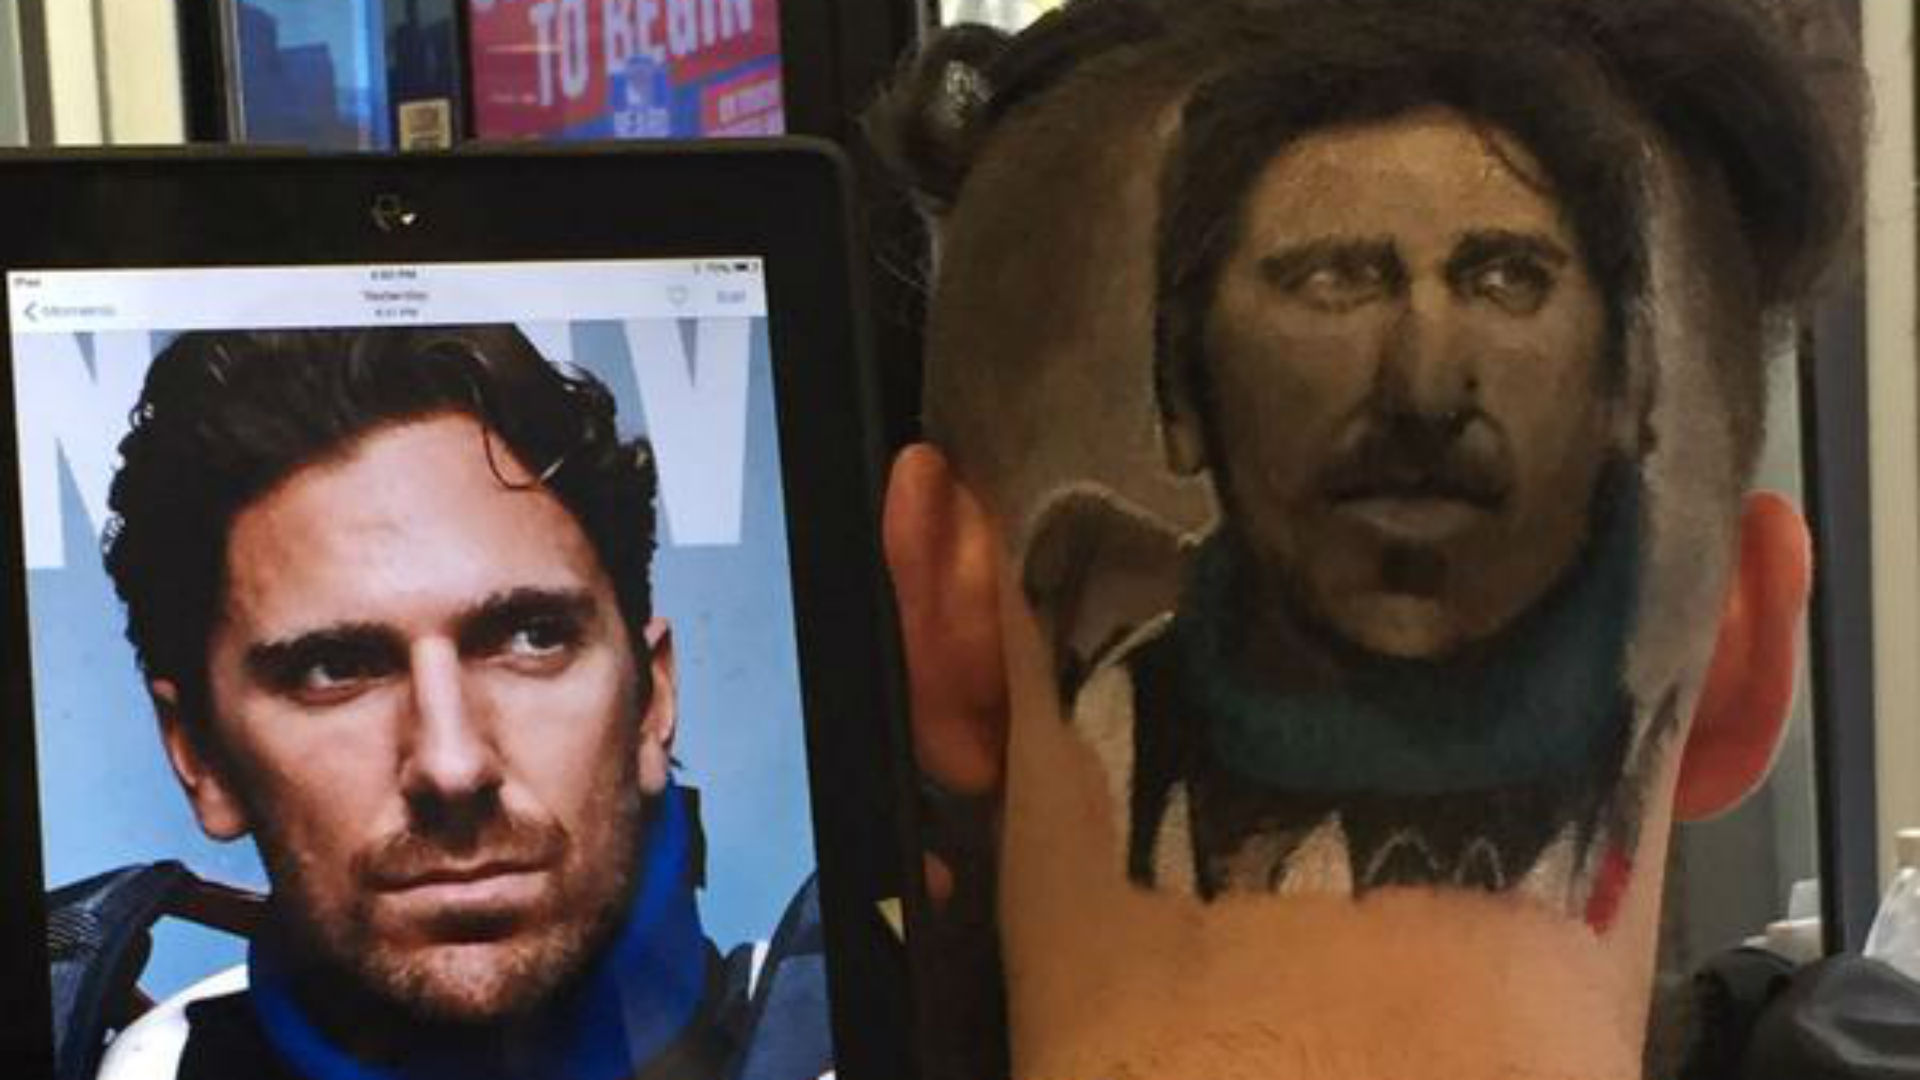 Rangers fan gets Henrik Lundqvist's face shaved into the back of his head